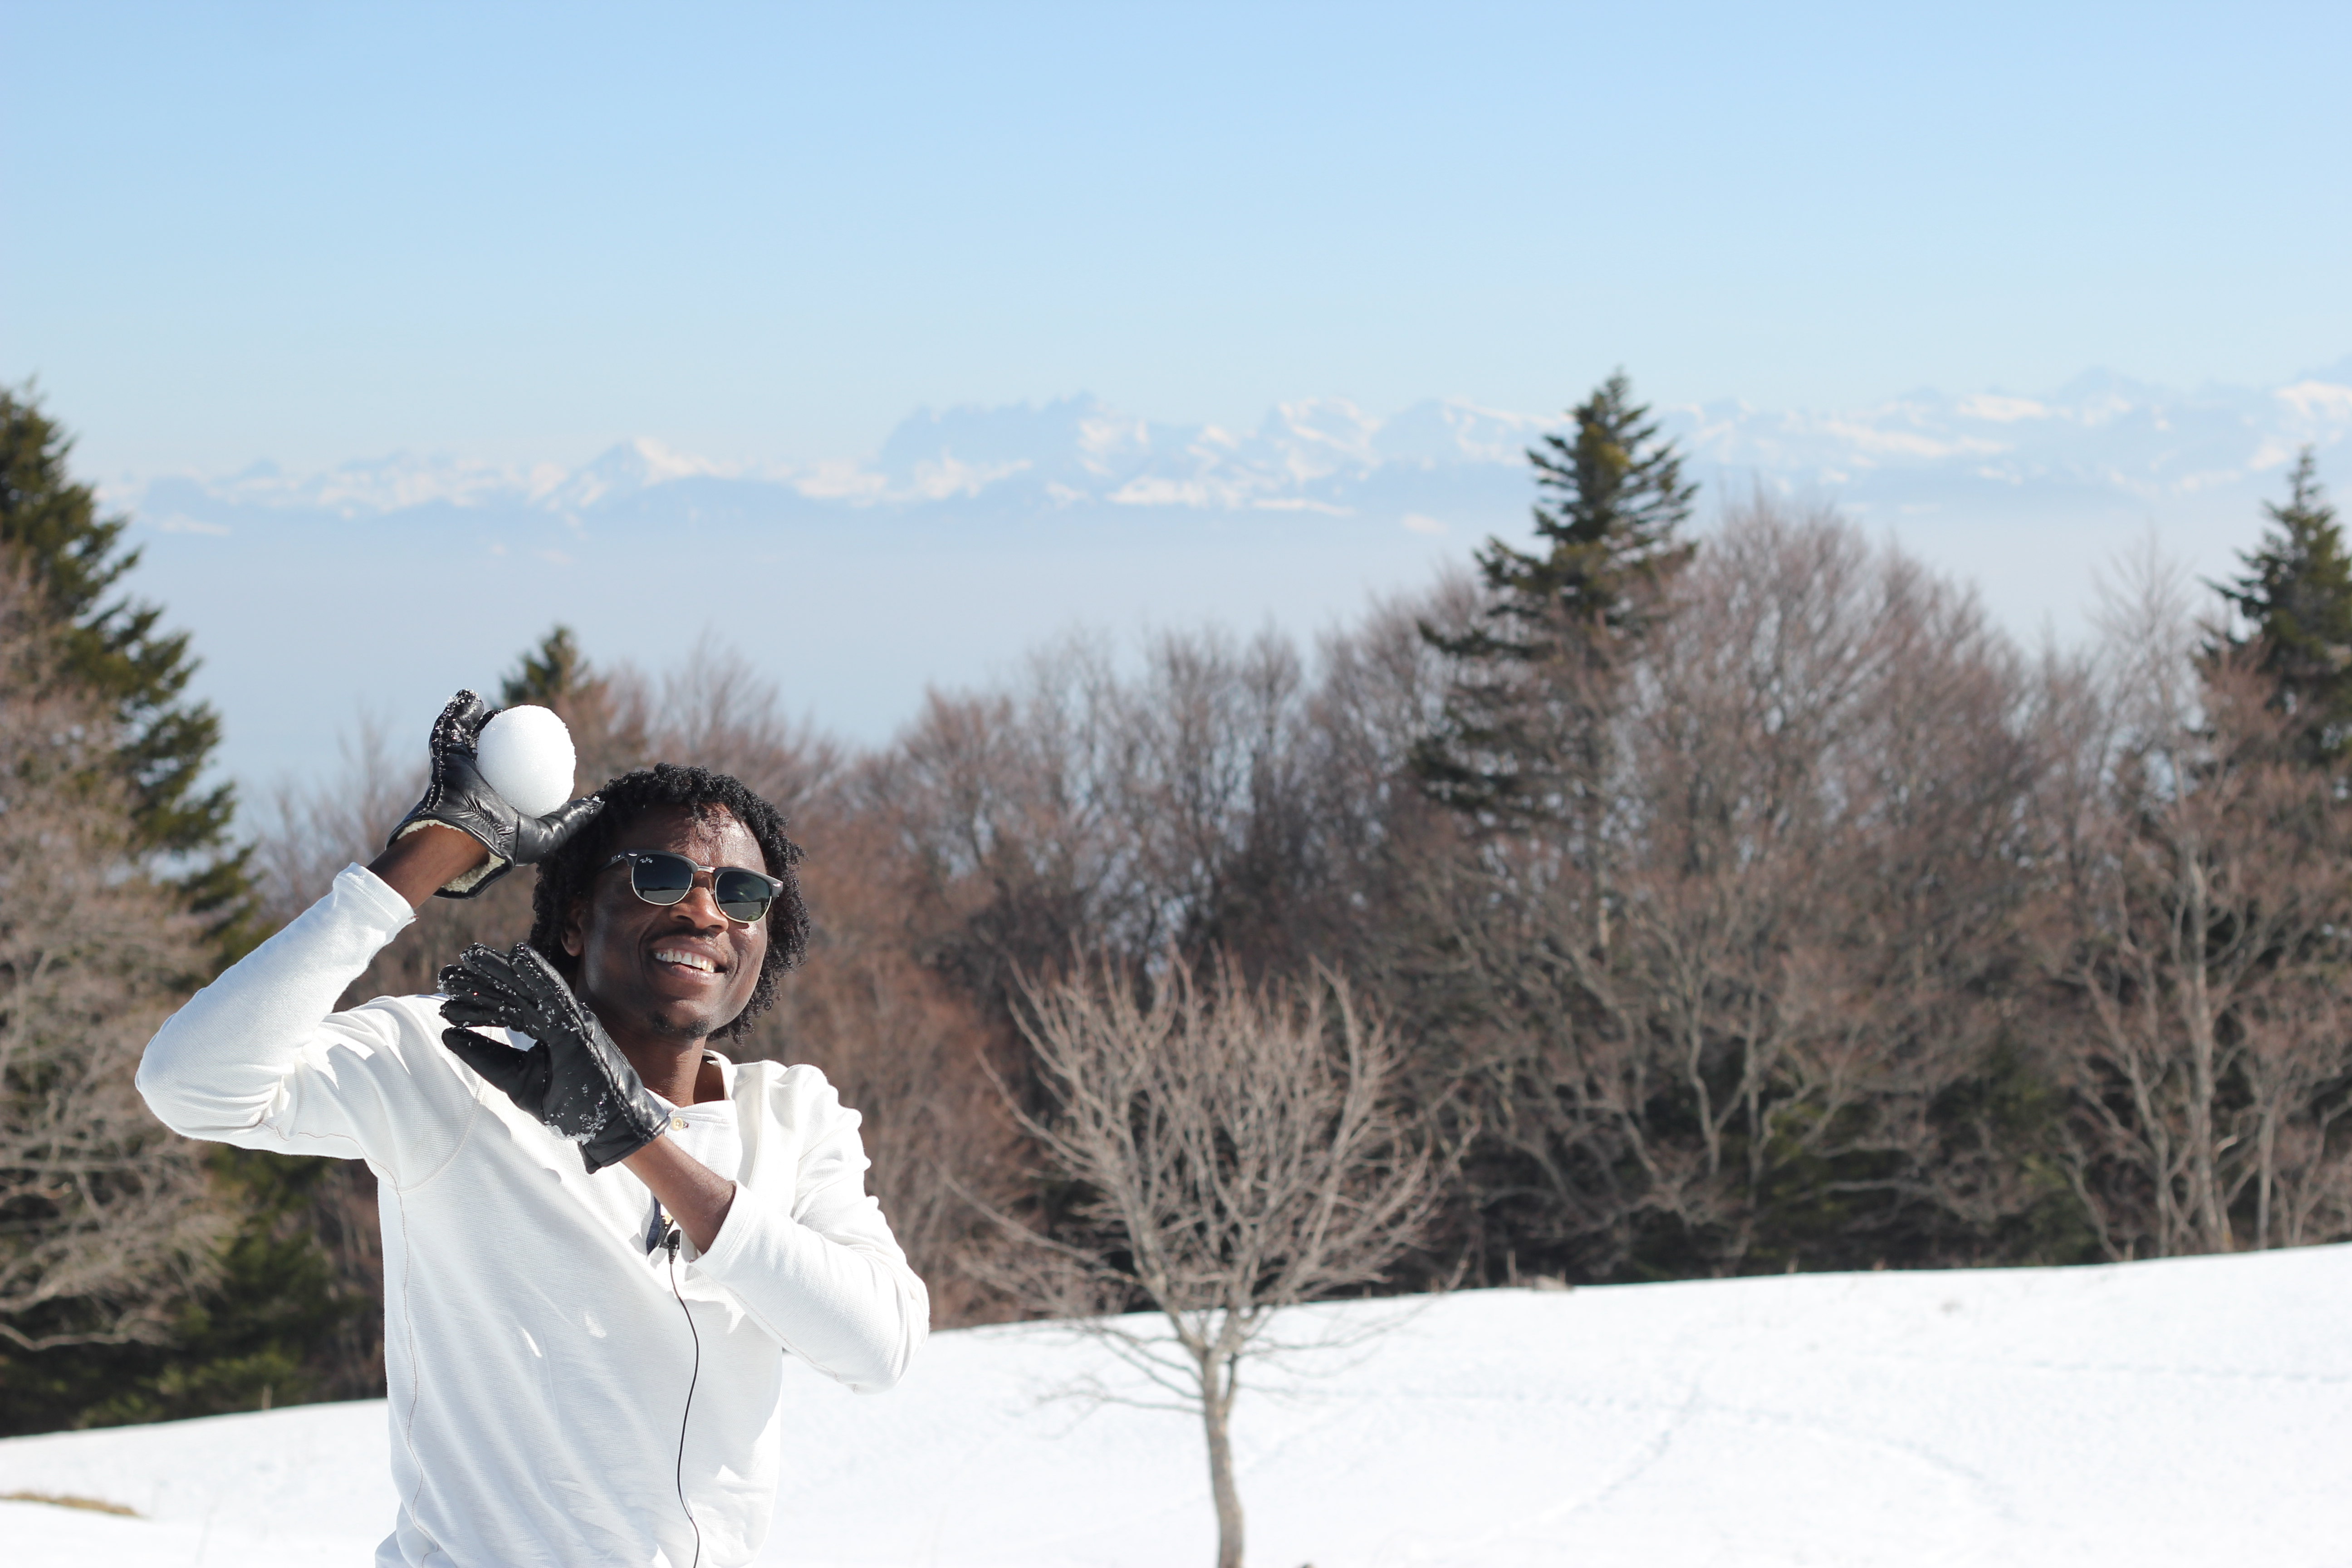 Aziz in the snow – wearing a white shirt, black gloves and sunglasses – about to throw a snowball